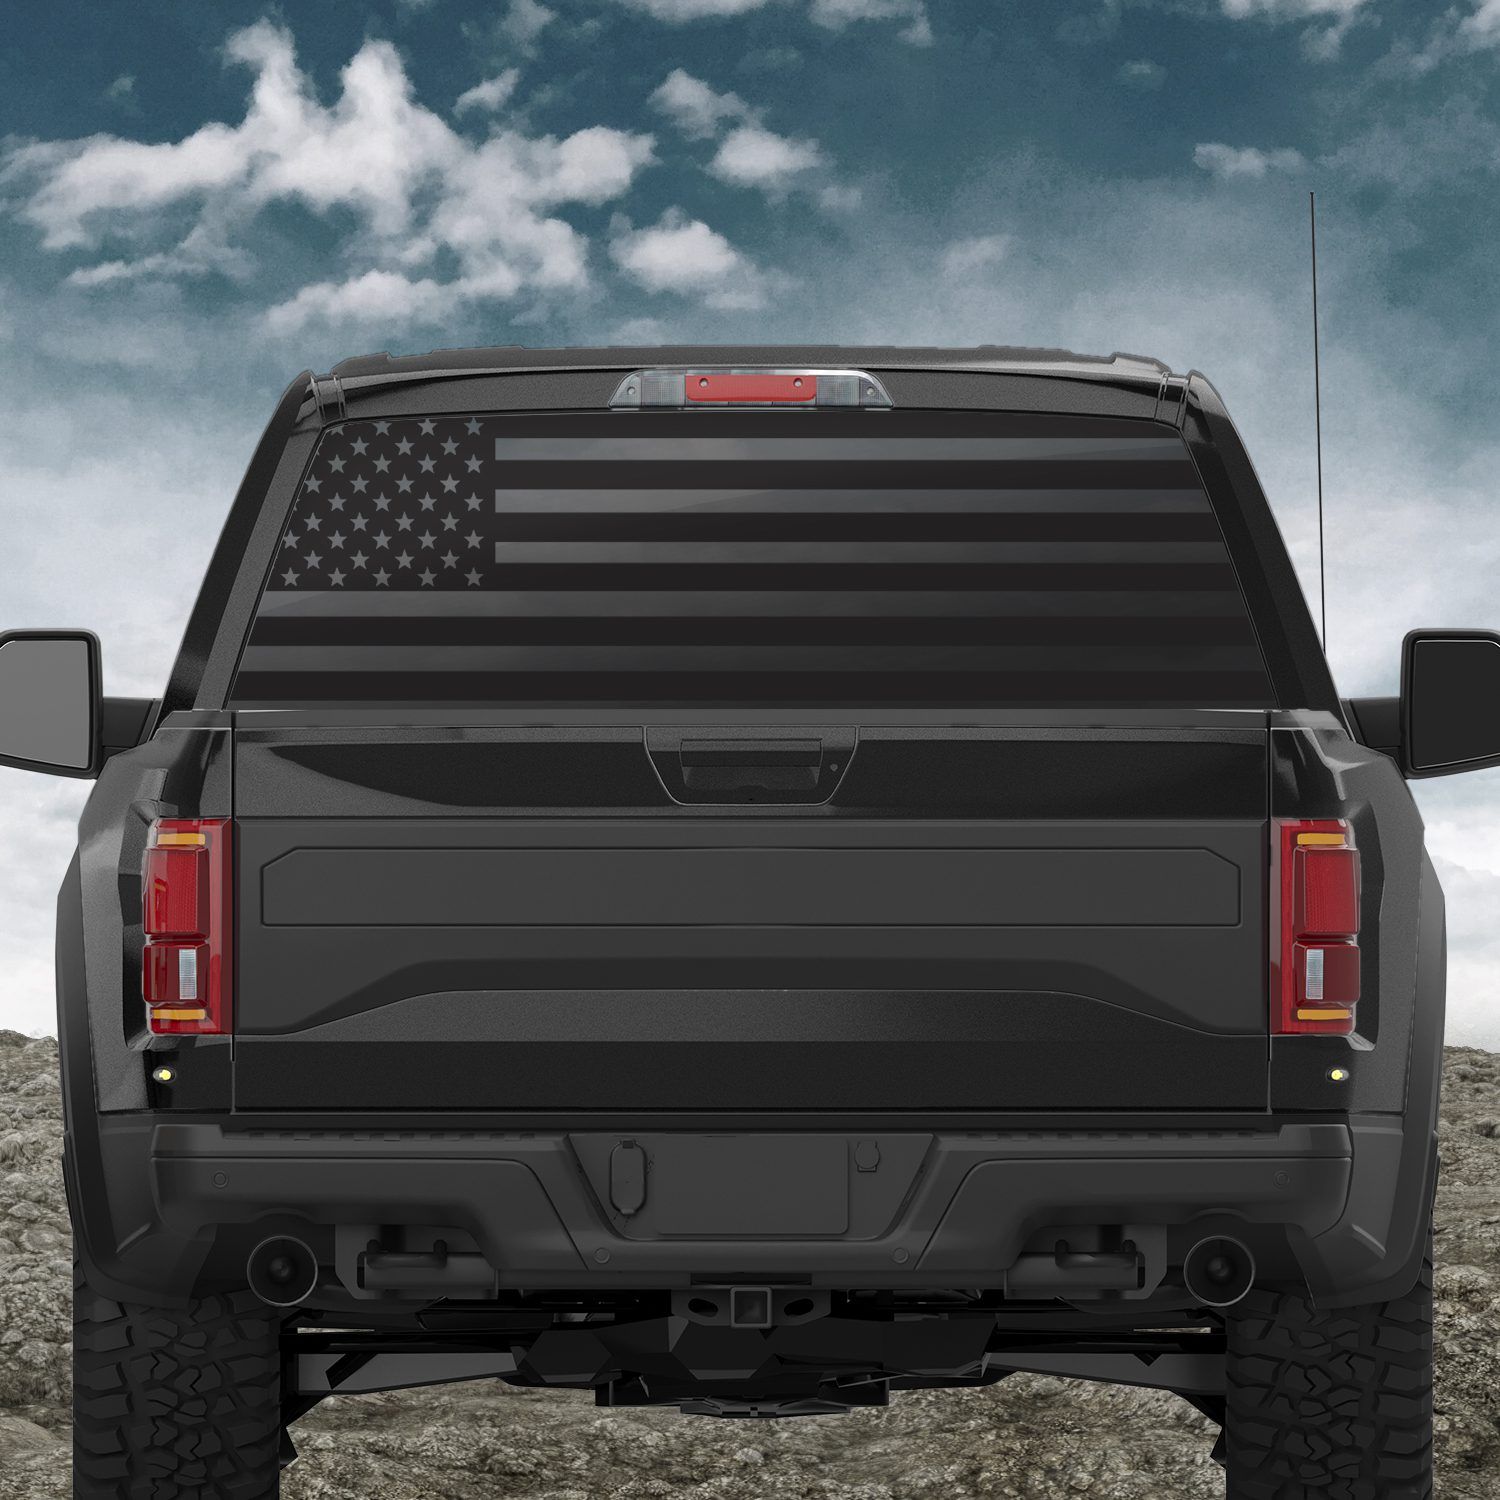 American Flag Back Window Decal Patriot - Back window decals for trucks